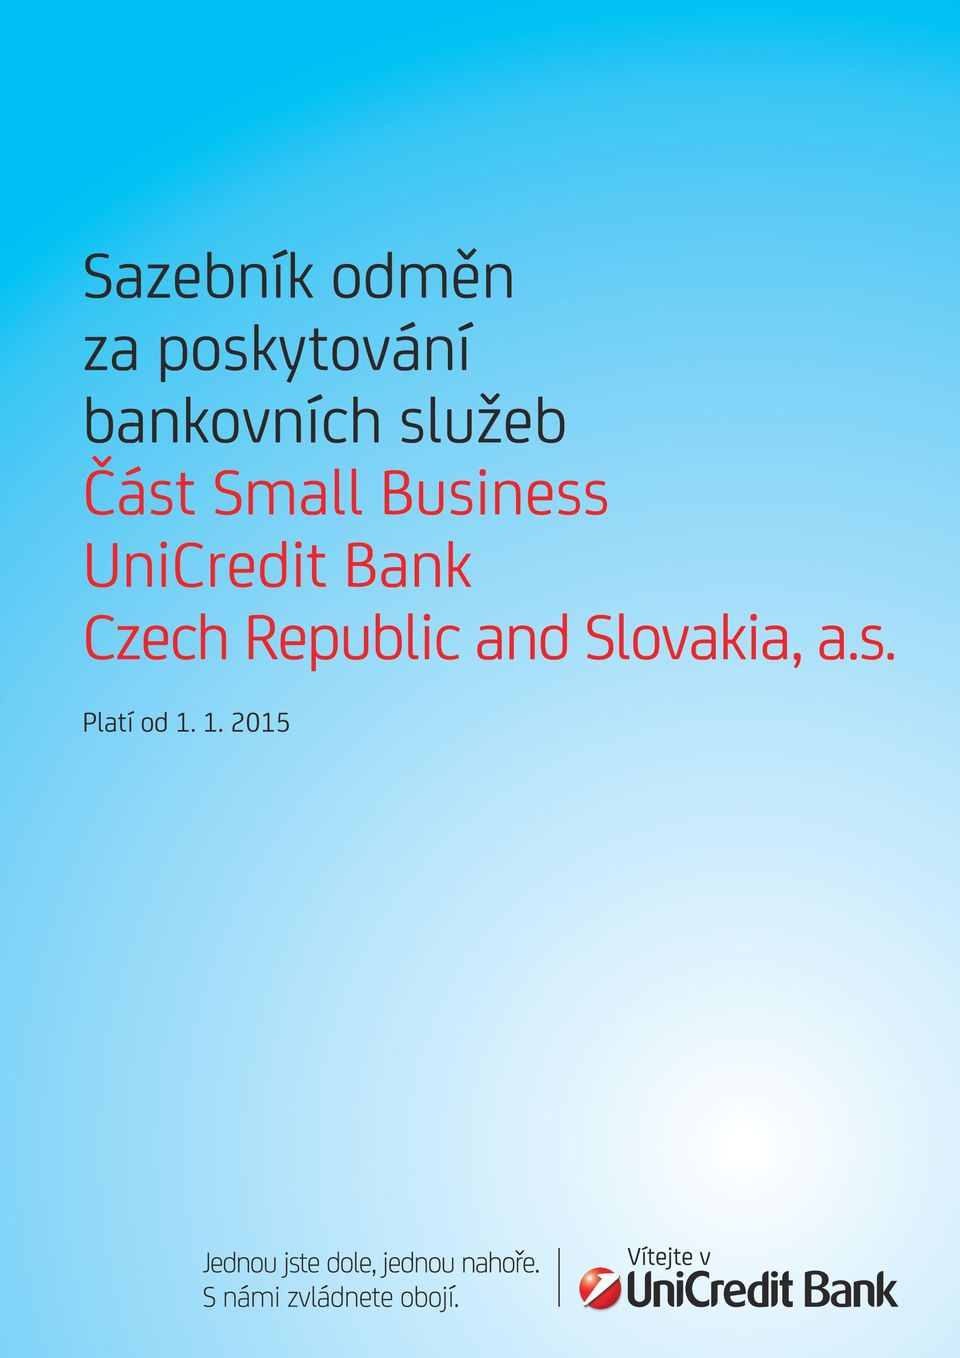 Business UniCredit Bank Czech